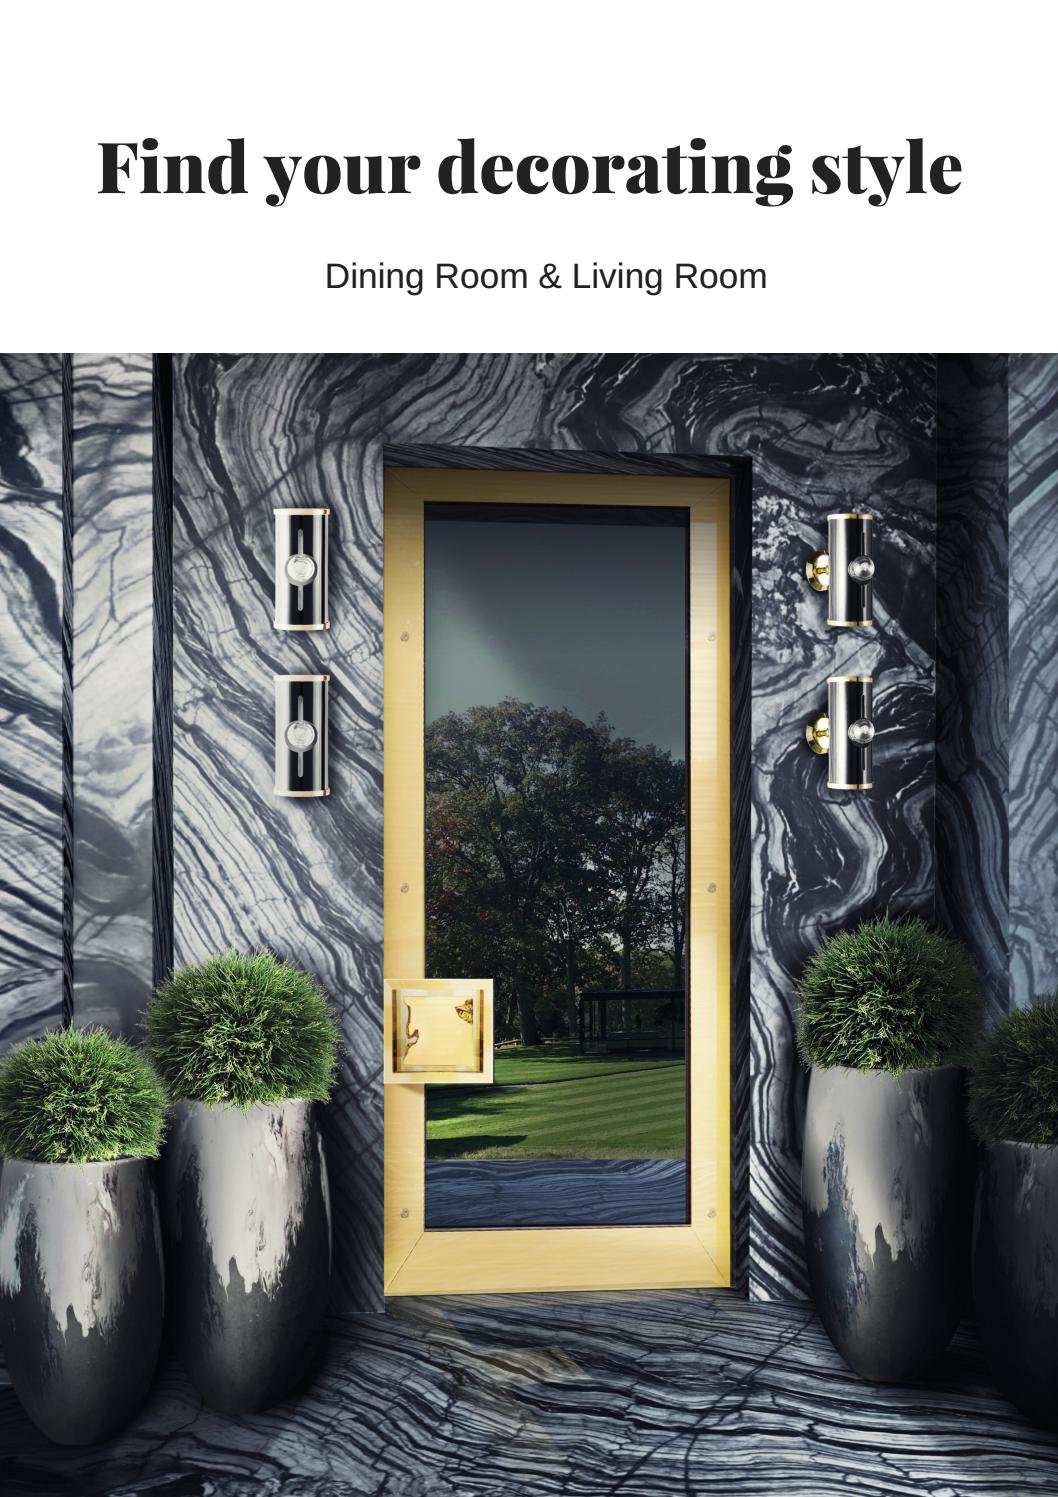 How to find your decorating style - Find Your Decorating Style Dining Room Living Room By Insplosion Issuu